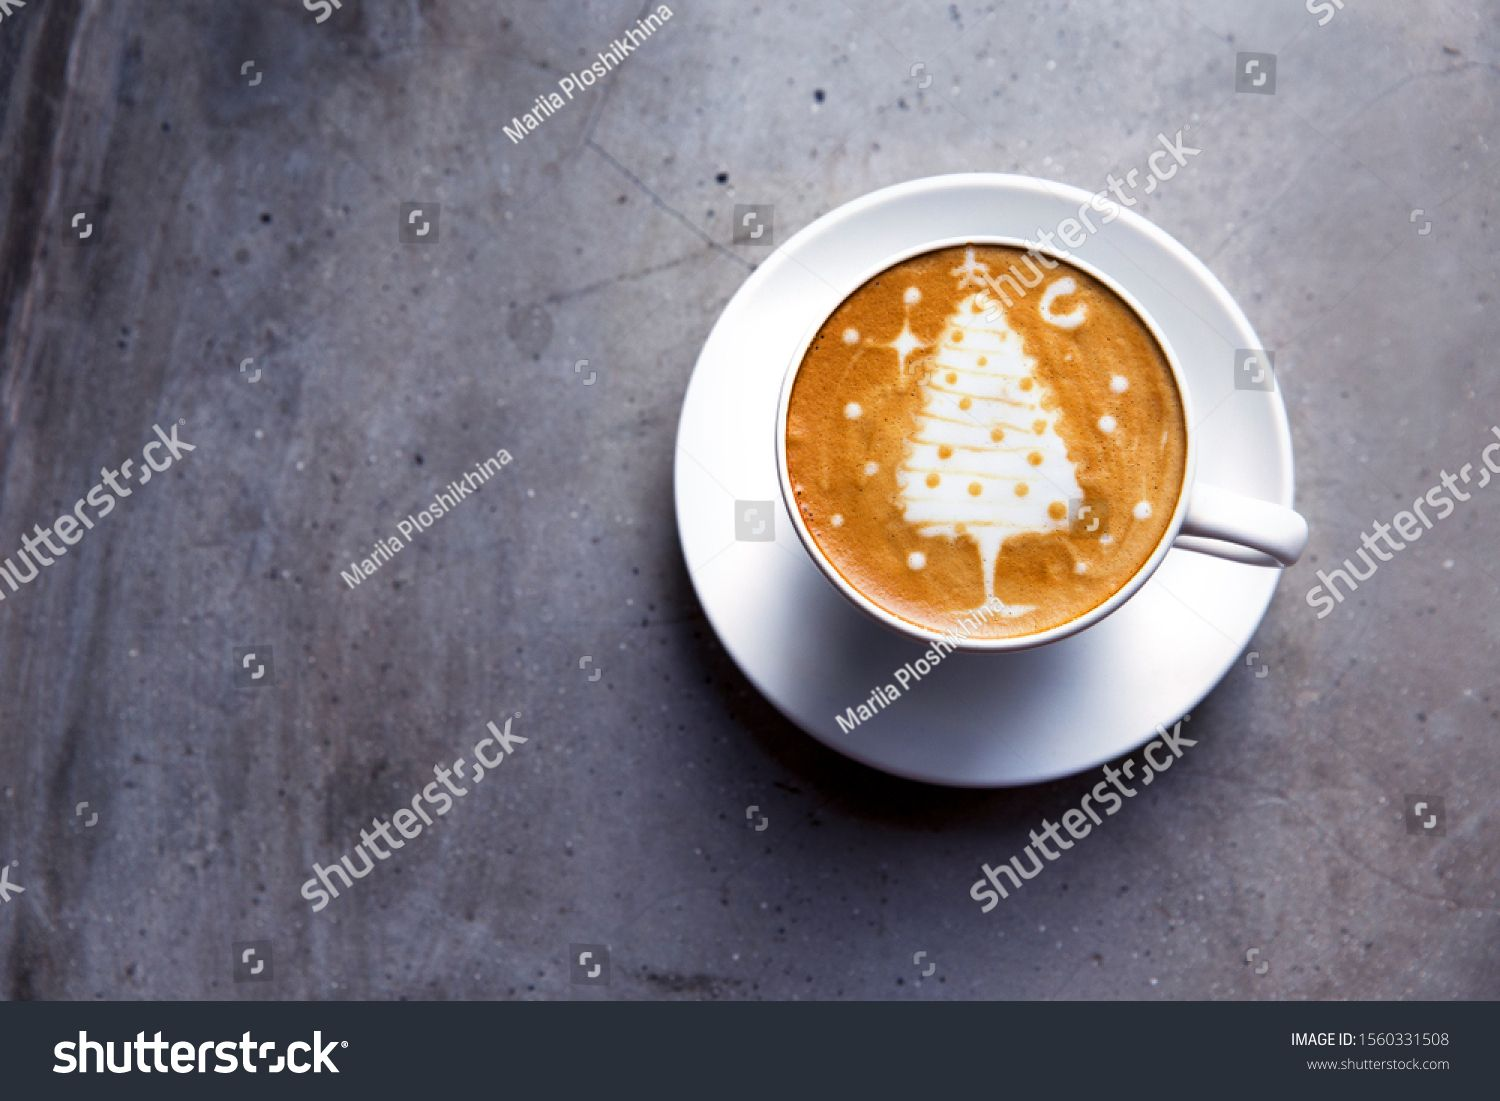 Tasty Cappuccino With Christmas Tree Latte Art On Grey Concrete Background Holiday Concept Ad Aff Tree Latte Christmas Tasty Latte Art Latte Tasty